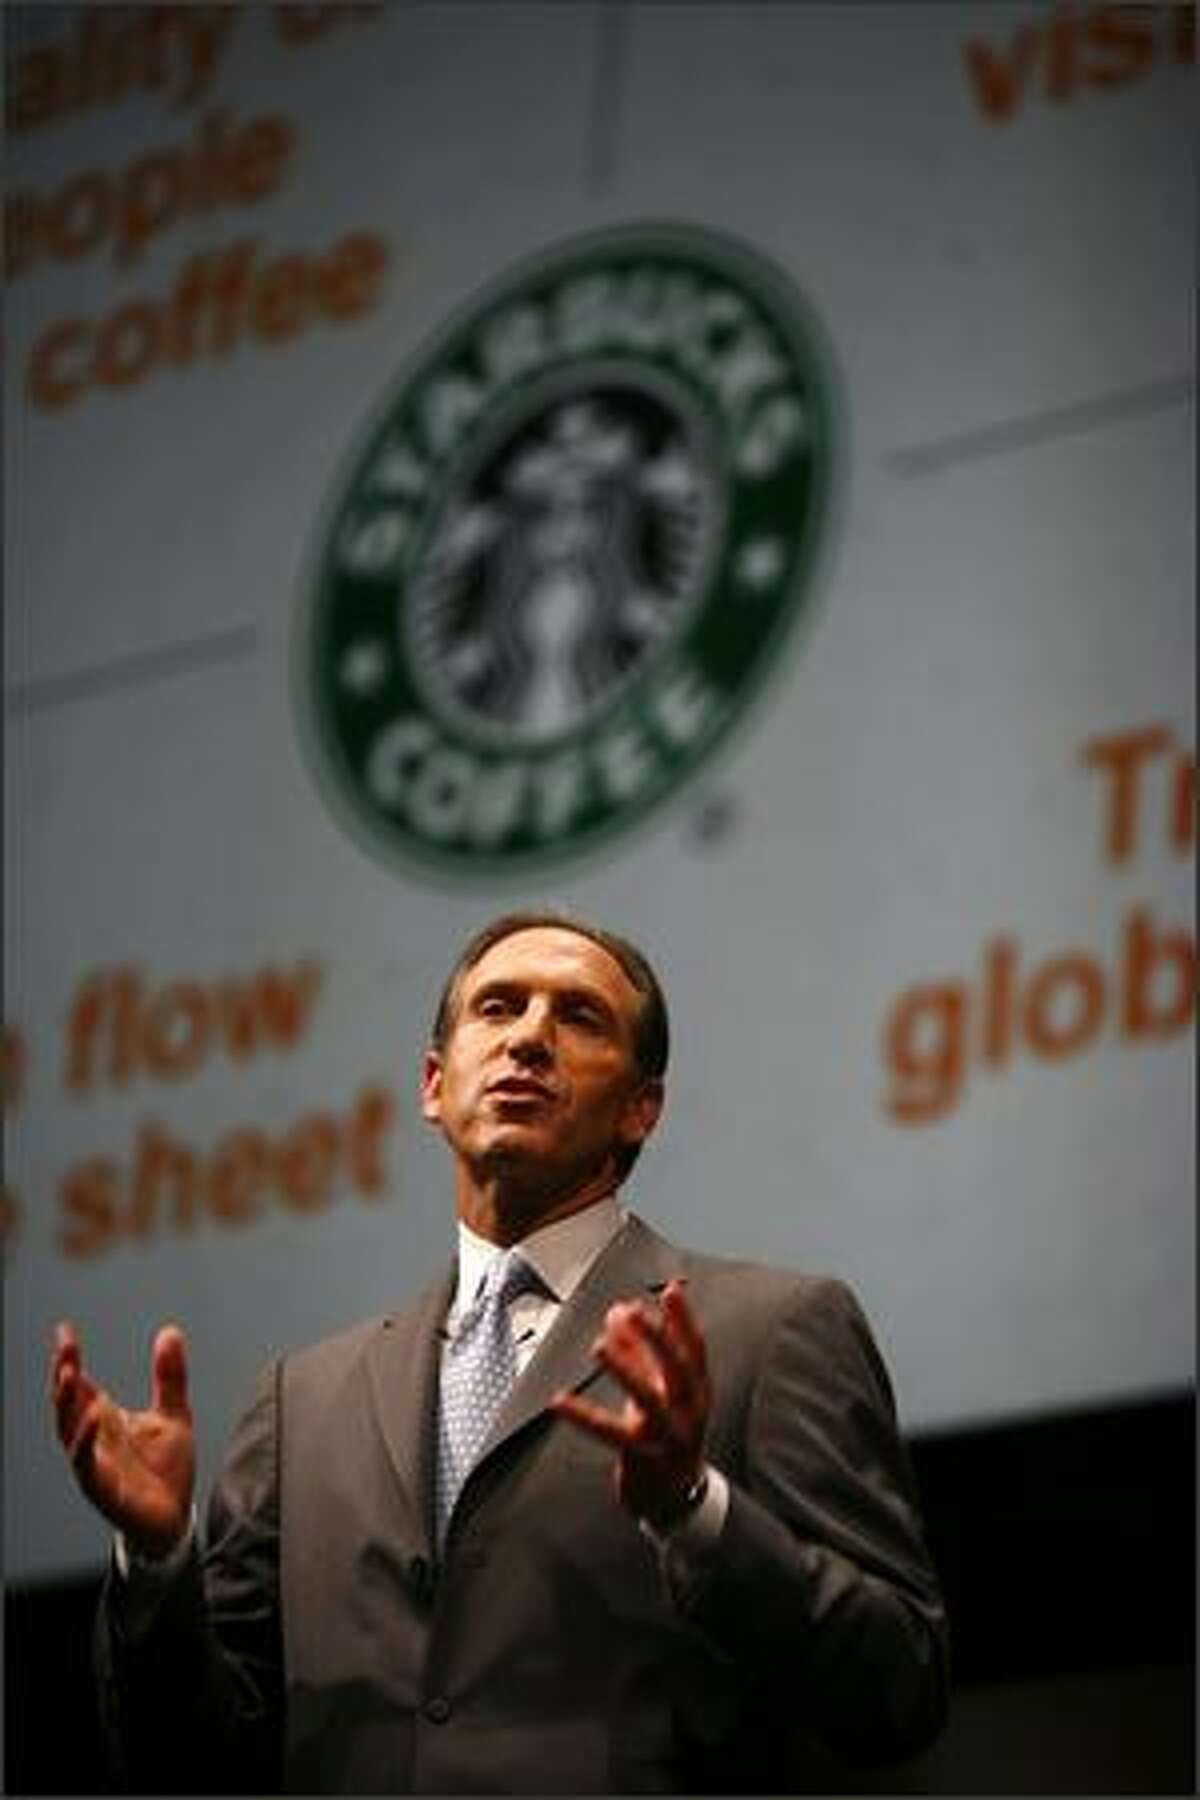 Starbucks CEO Howard Schultz speaks.